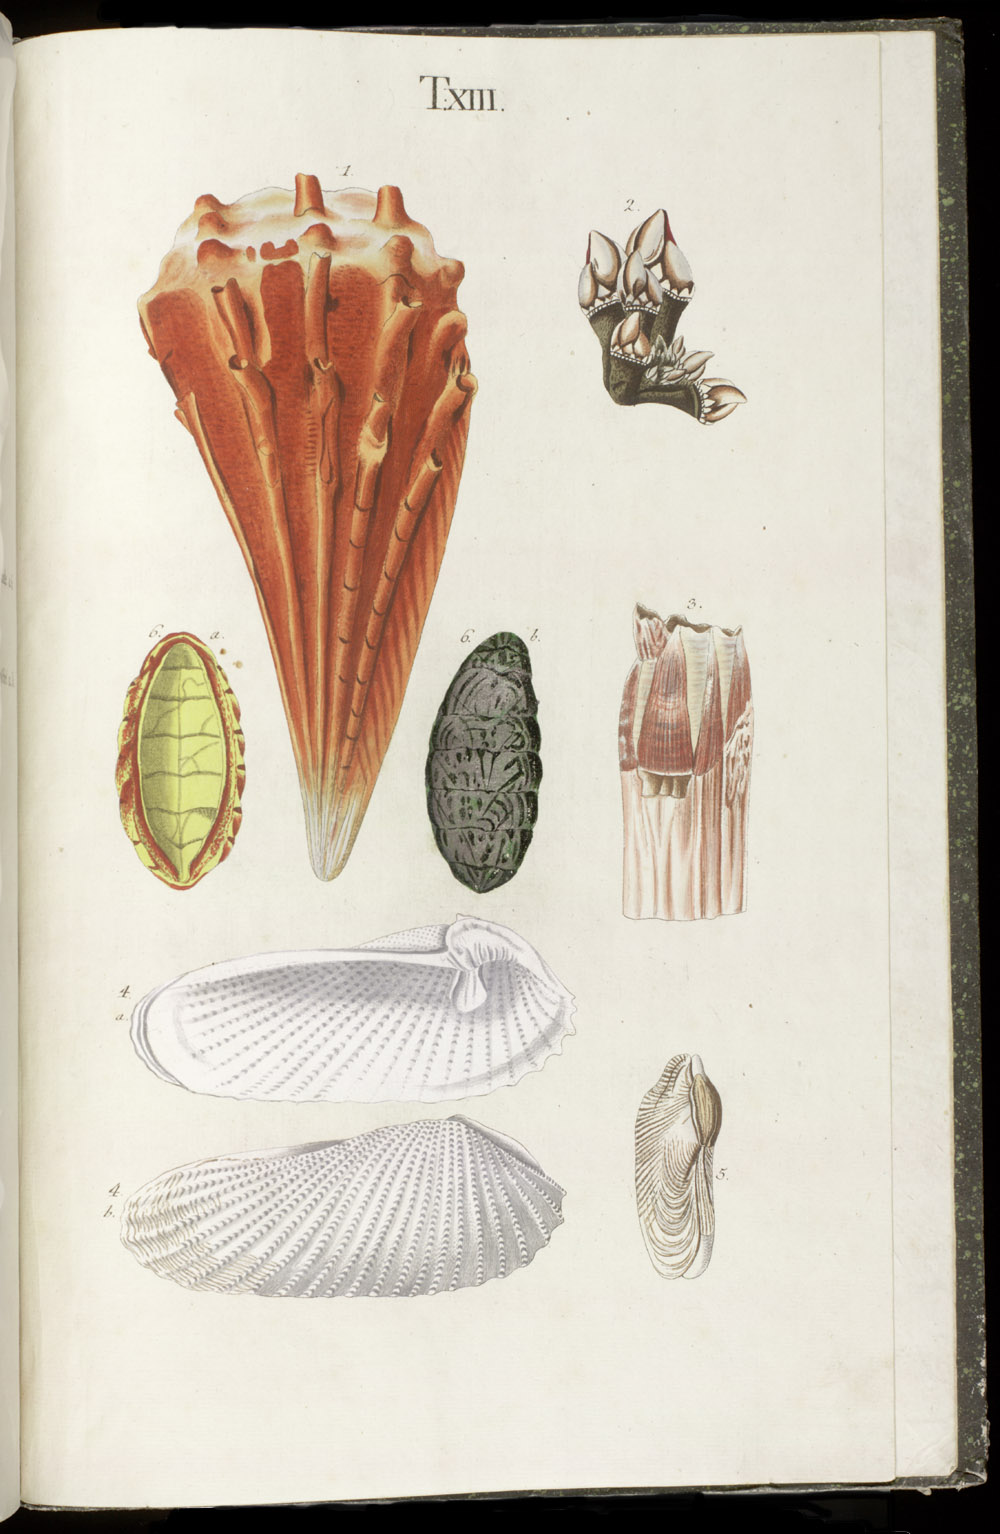 Color illustrations of seashells (bivalve),  Image number:SIL6-1-163a